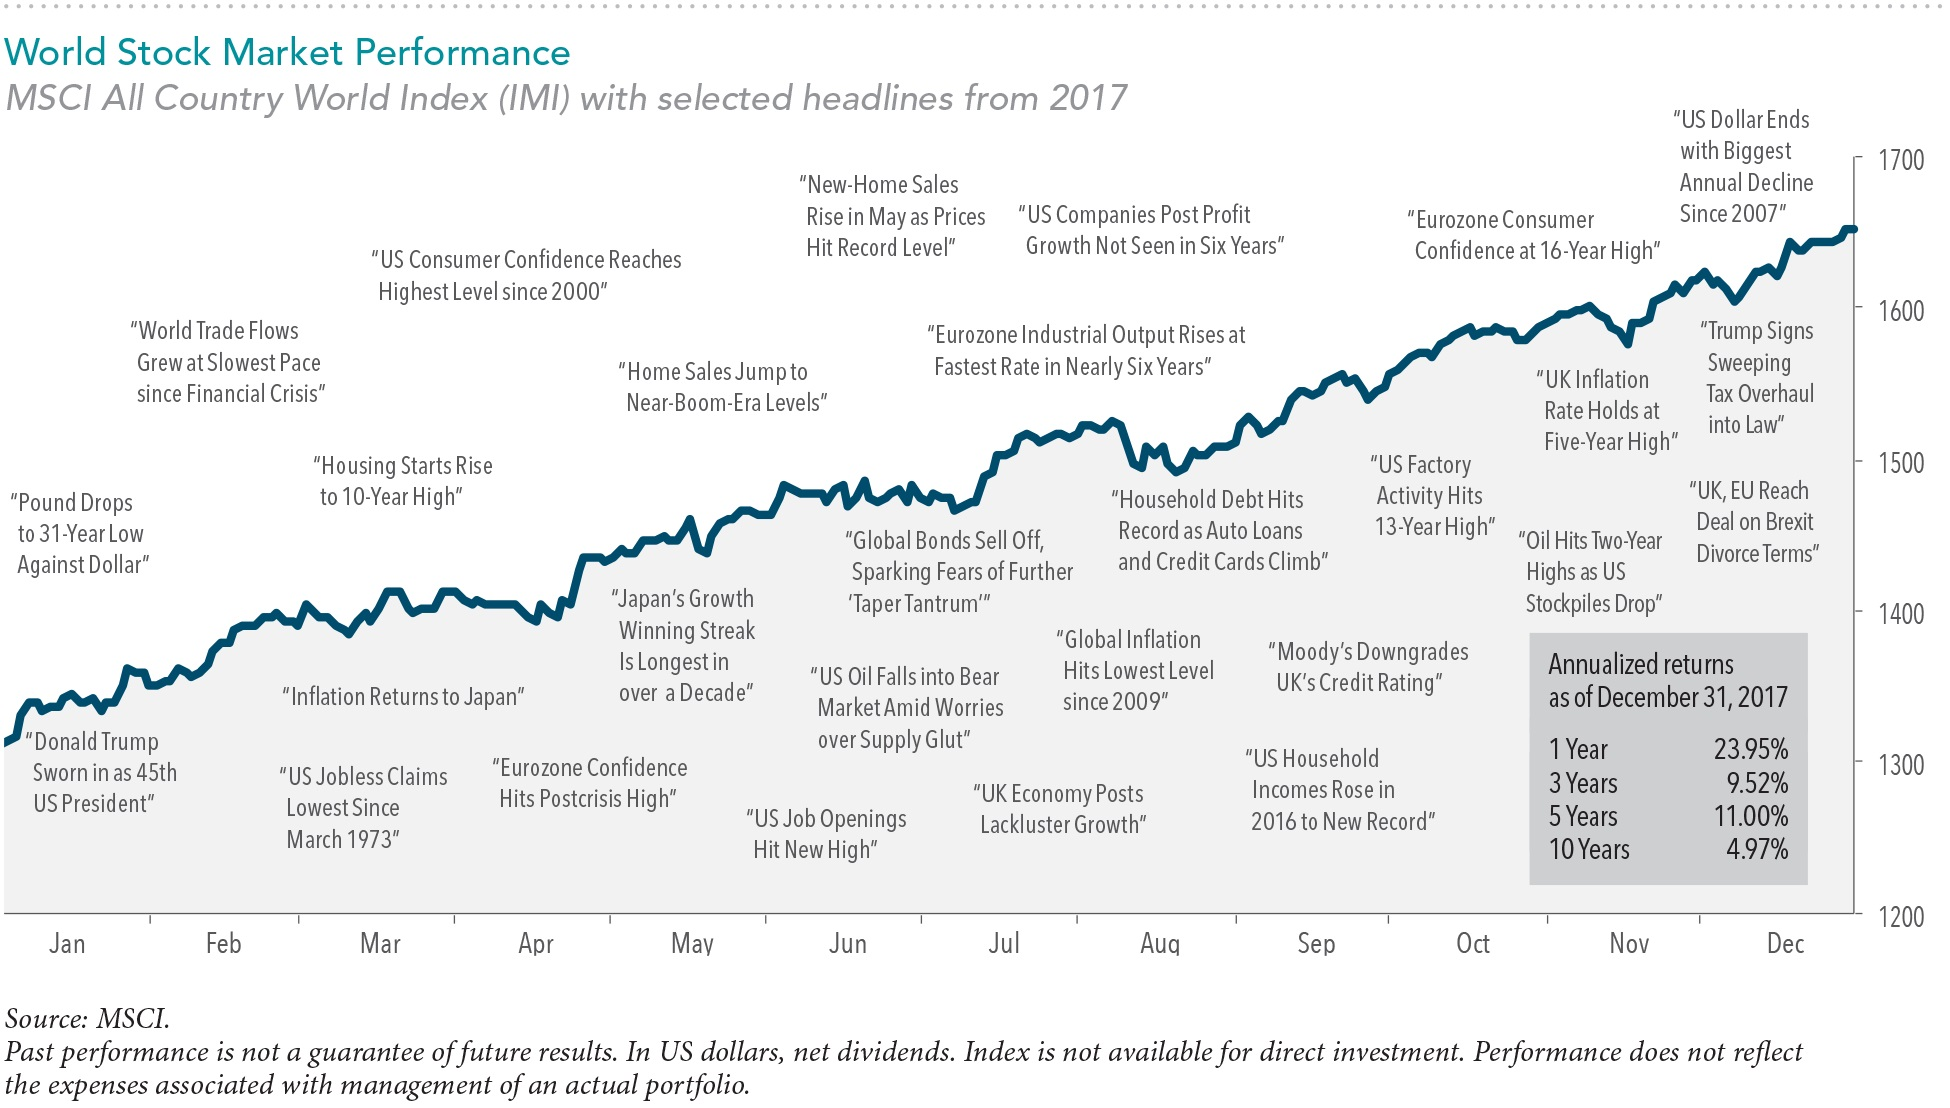 The chart above highlights some of the year's prominent headlines in the context of global stock market performance as measured by the MSCI All Country World Index-Investable Market Index (MSCI ACWI IMI). These headlines are not offered to explain market returns. Instead, they serve as a reminder that investors should view daily events from a long-term perspective and avoid making investment decisions based solely on the news.